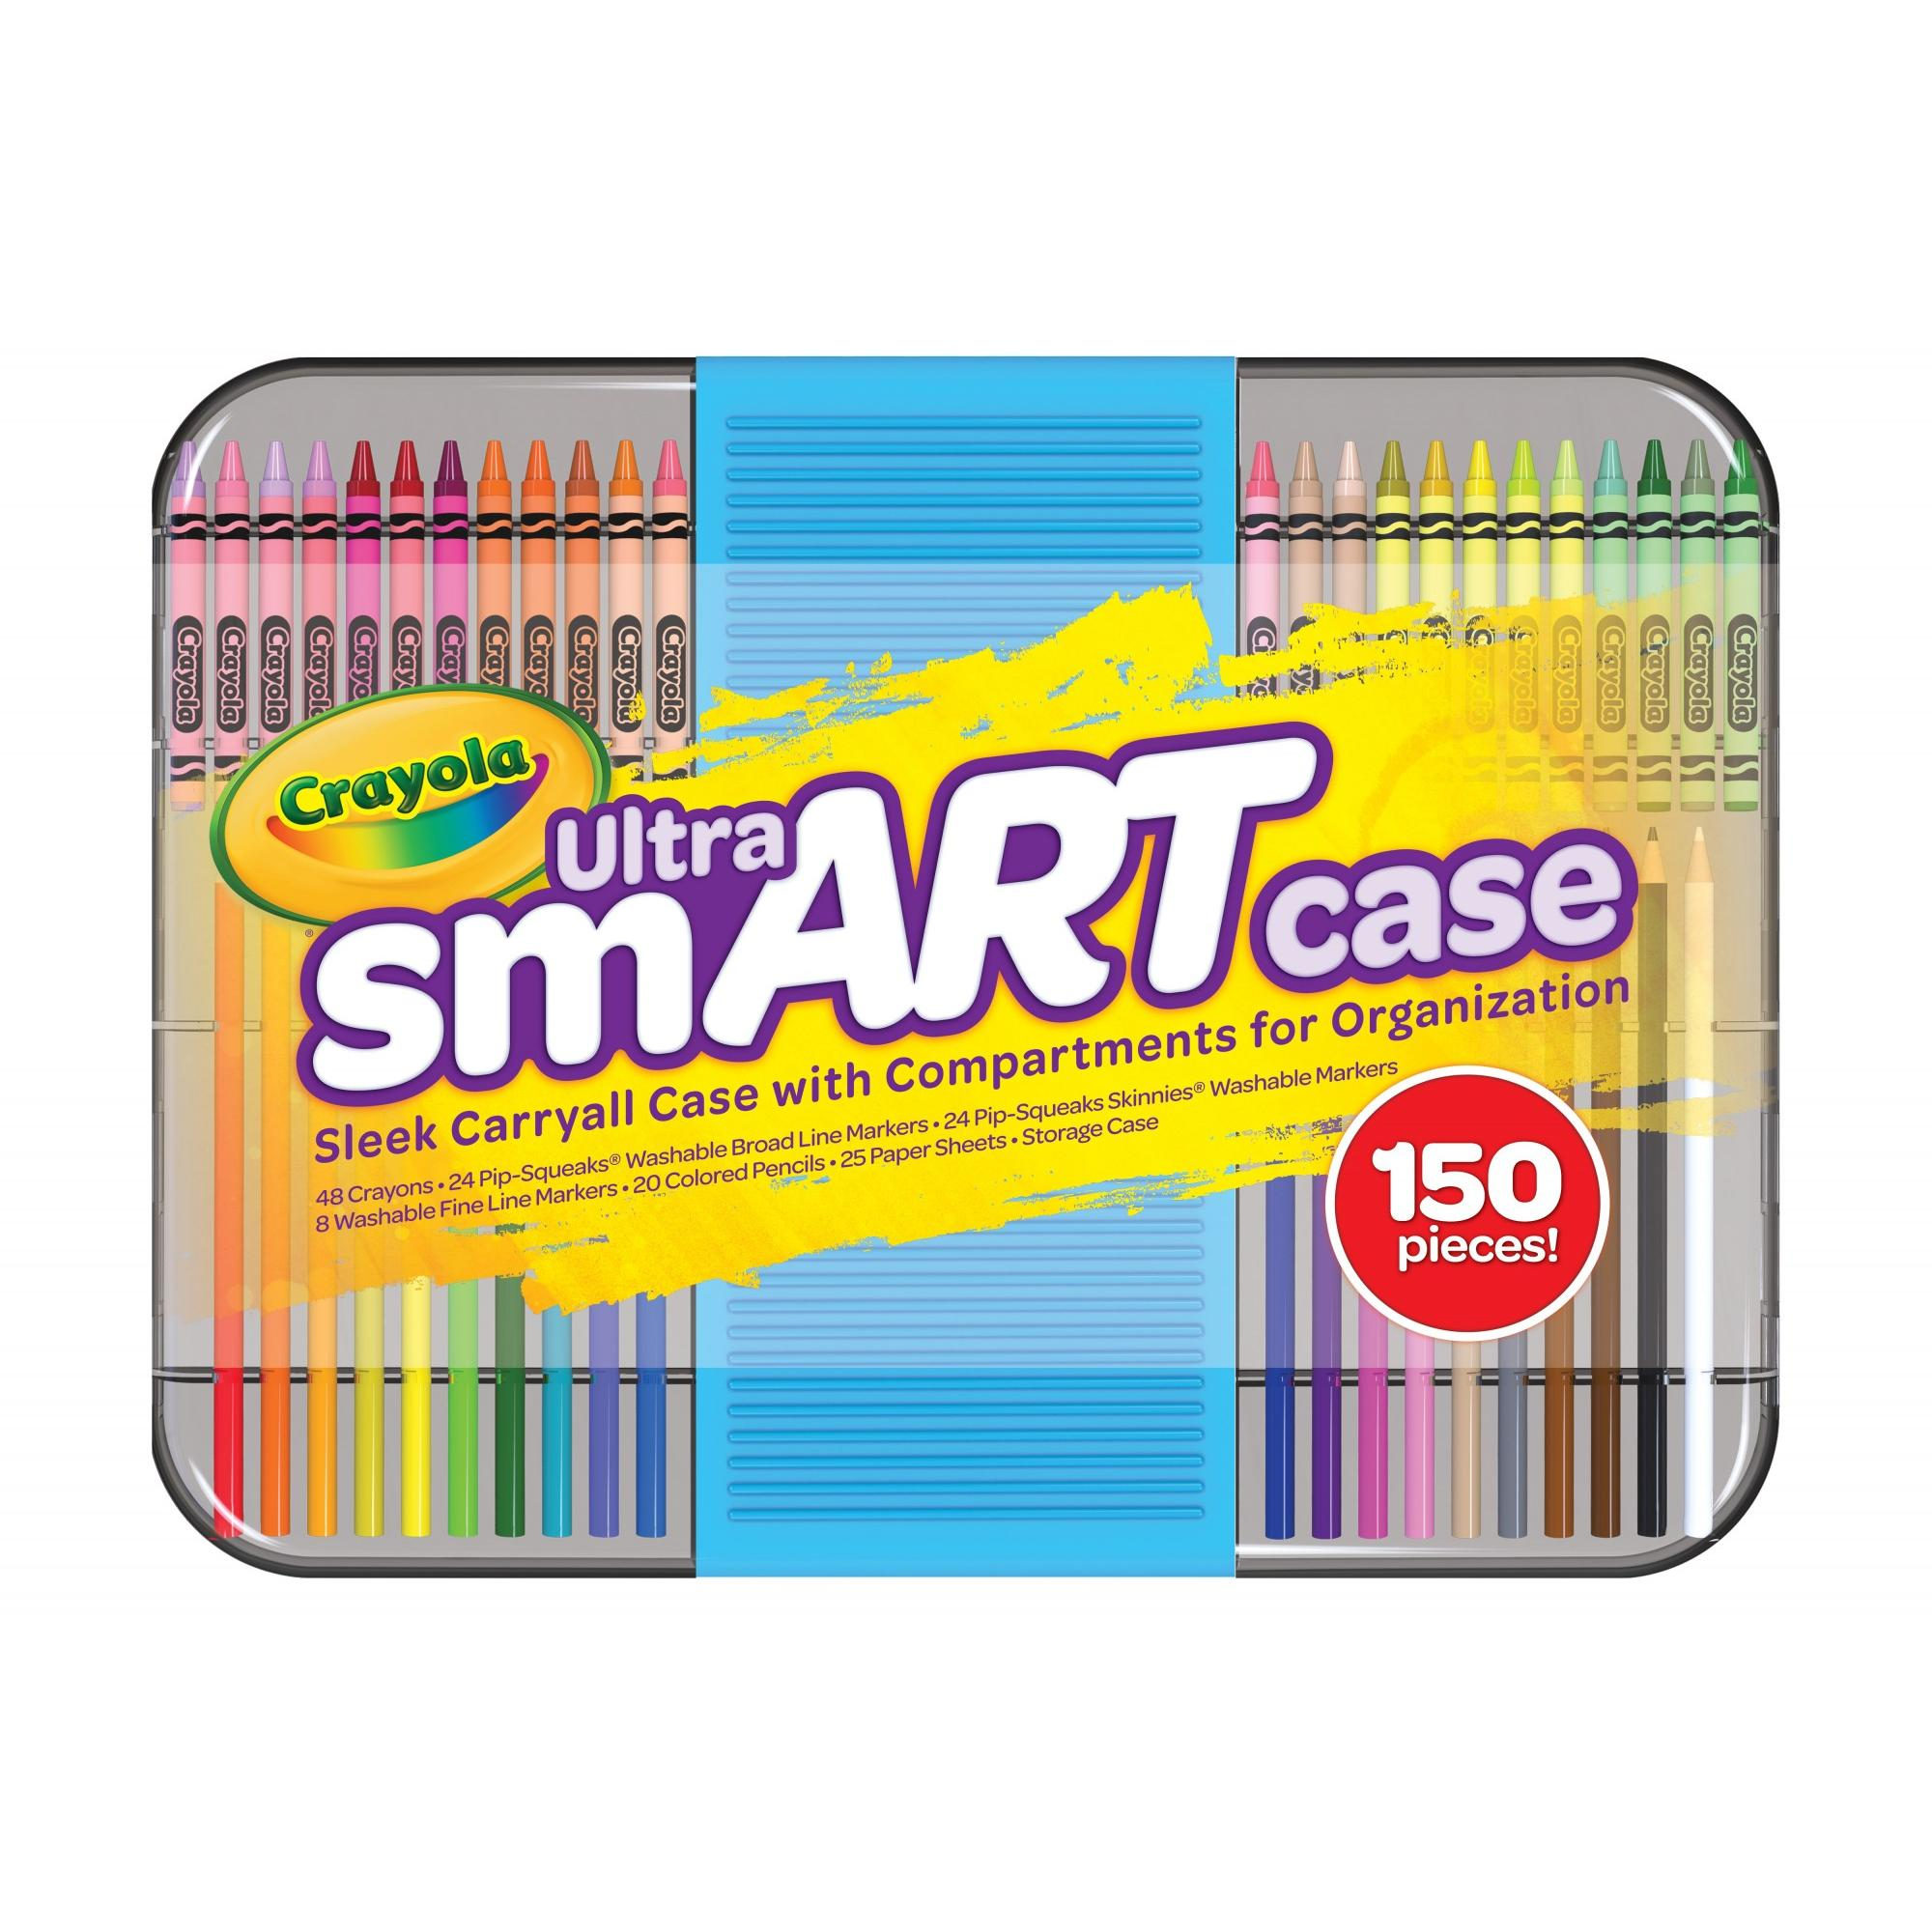 Crayola Ultra smART Case, 150 Pieces, Art Set, Gift for Kids & Adults